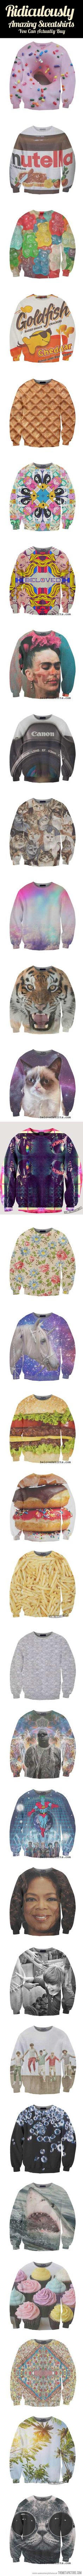 Ridiculously Amazing Sweatshirts…  The unicorn one though! <3 <3 <3 <3